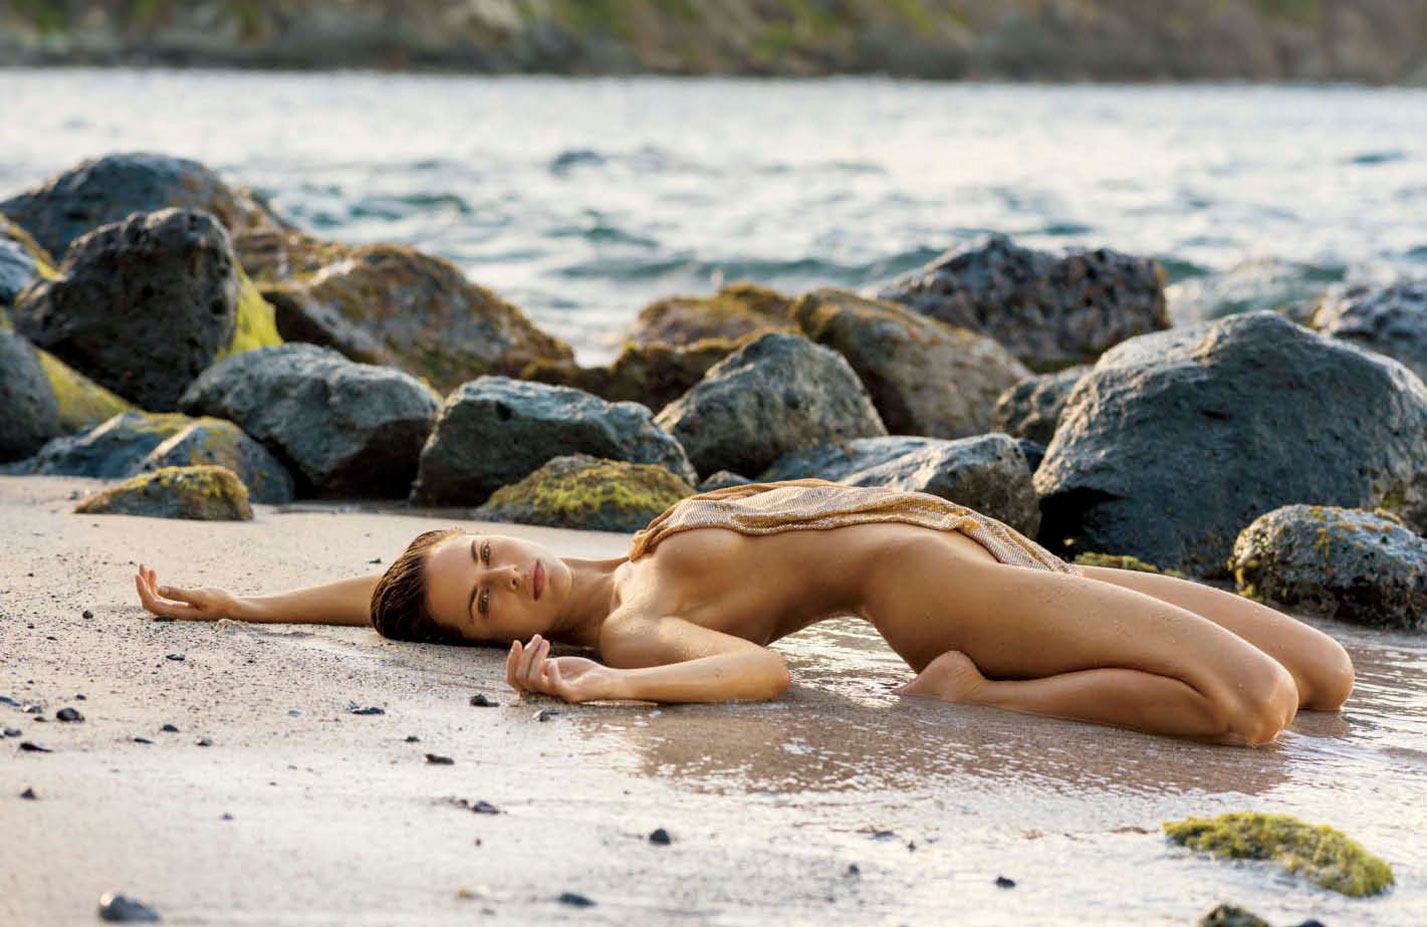 Лана Закосела / Lana Zakocela nude by Gilles Bensimon - Maxim US may 2017